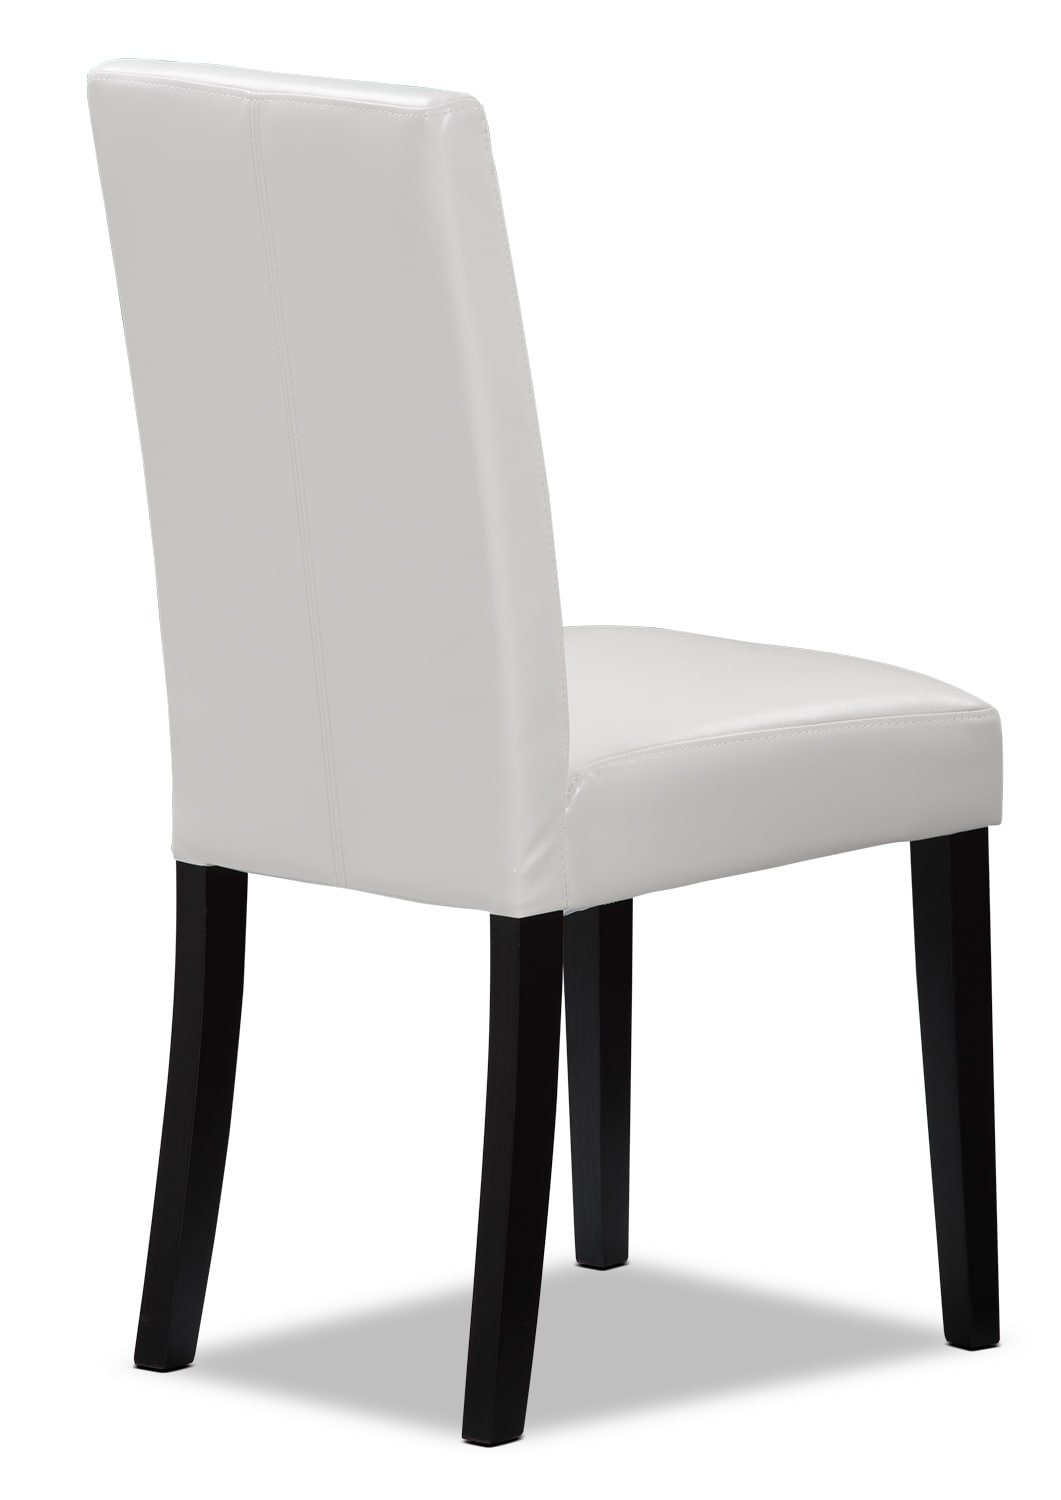 White Faux Leather Accent Dining Chair The Brick : 400035 from www.thebrick.com size 1061 x 1500 jpeg 176kB